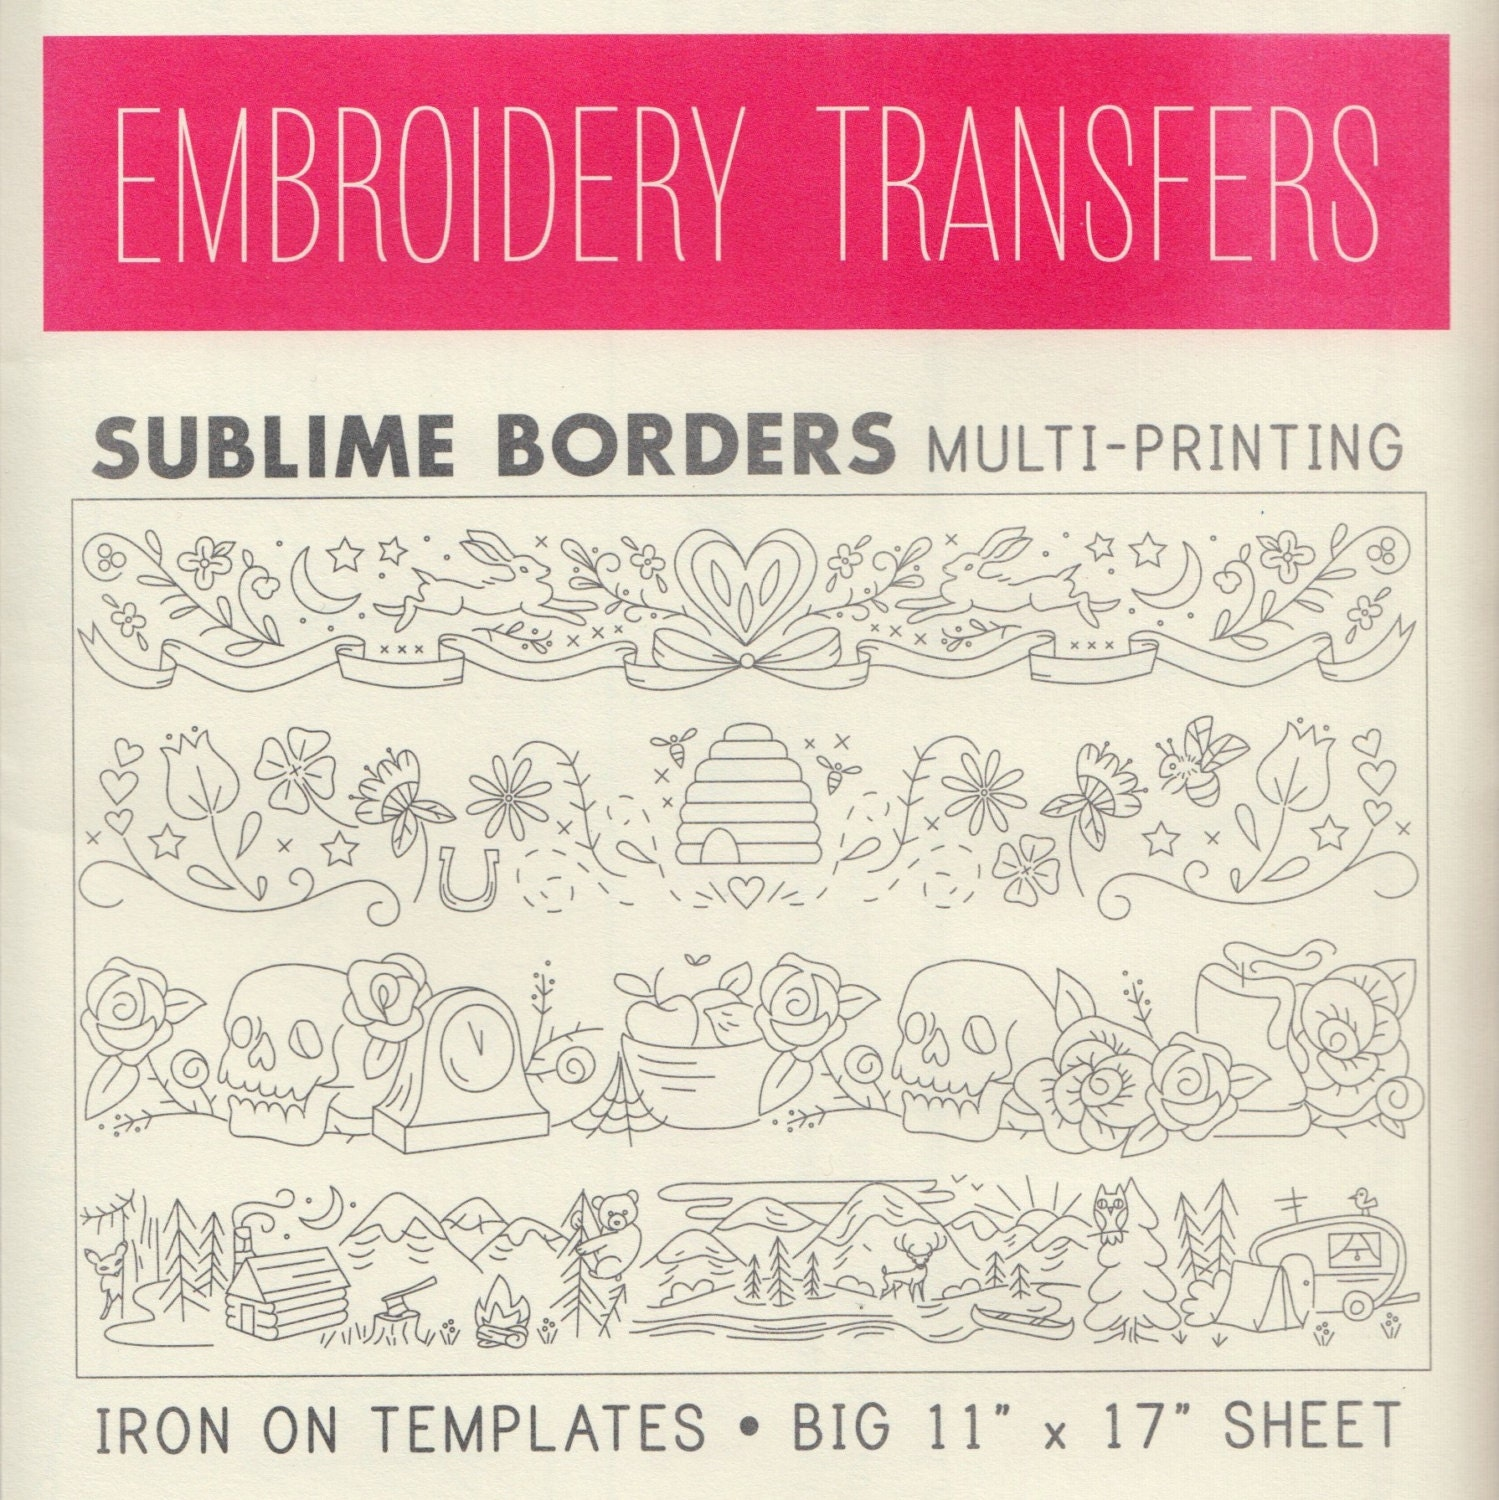 Sublime stitching embroidery patterns iron on transfer hand